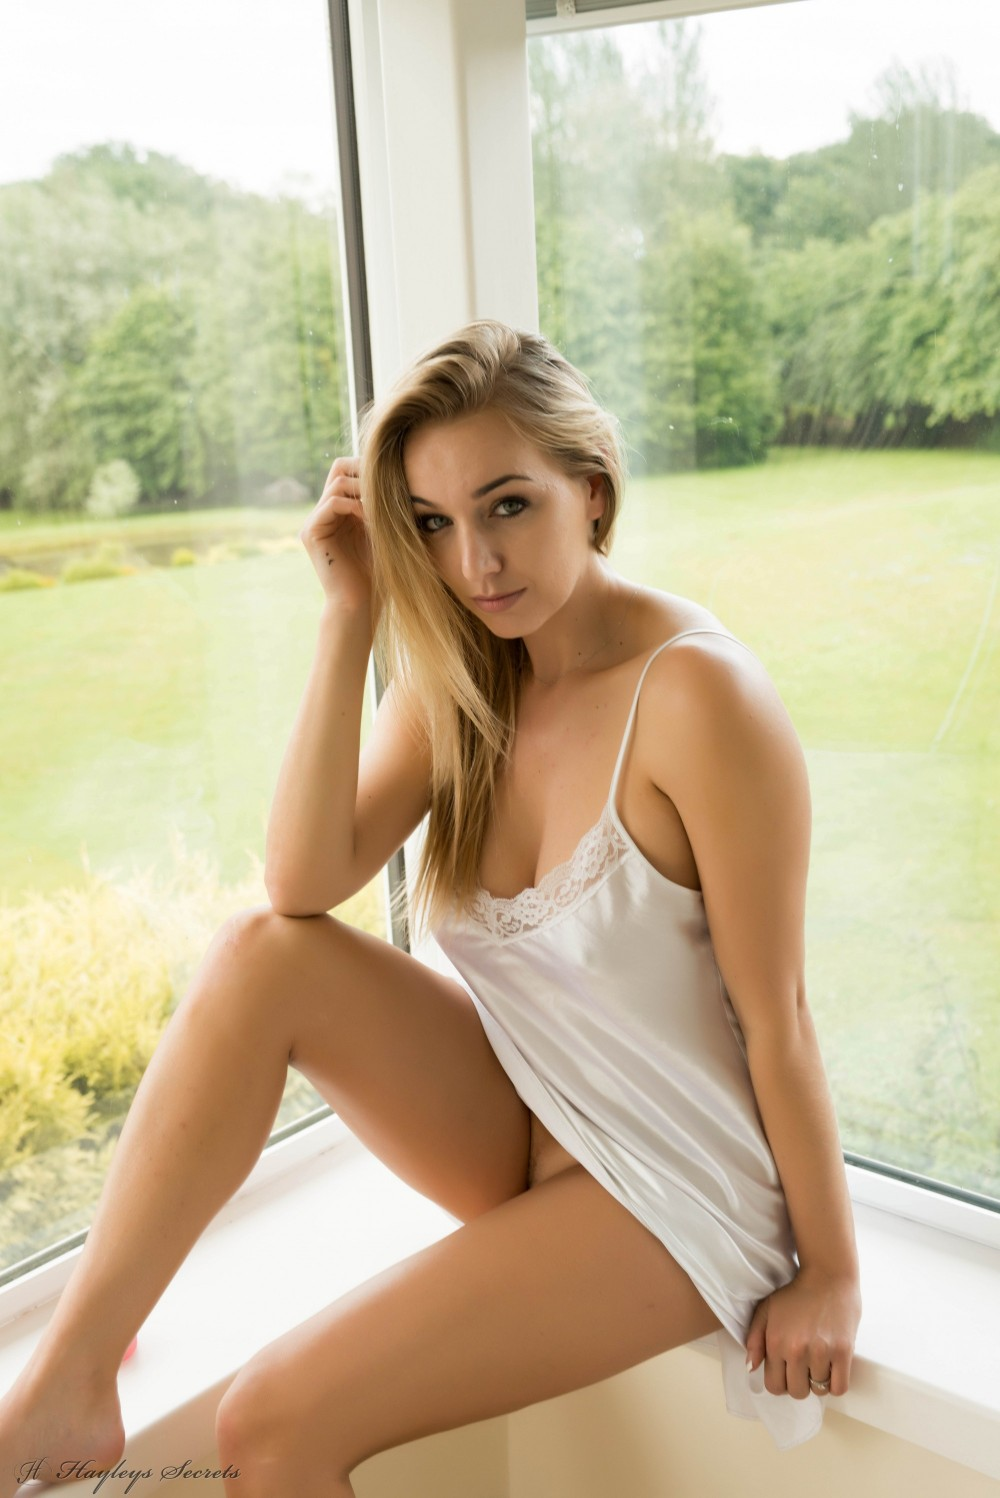 hayley marie coppin nude